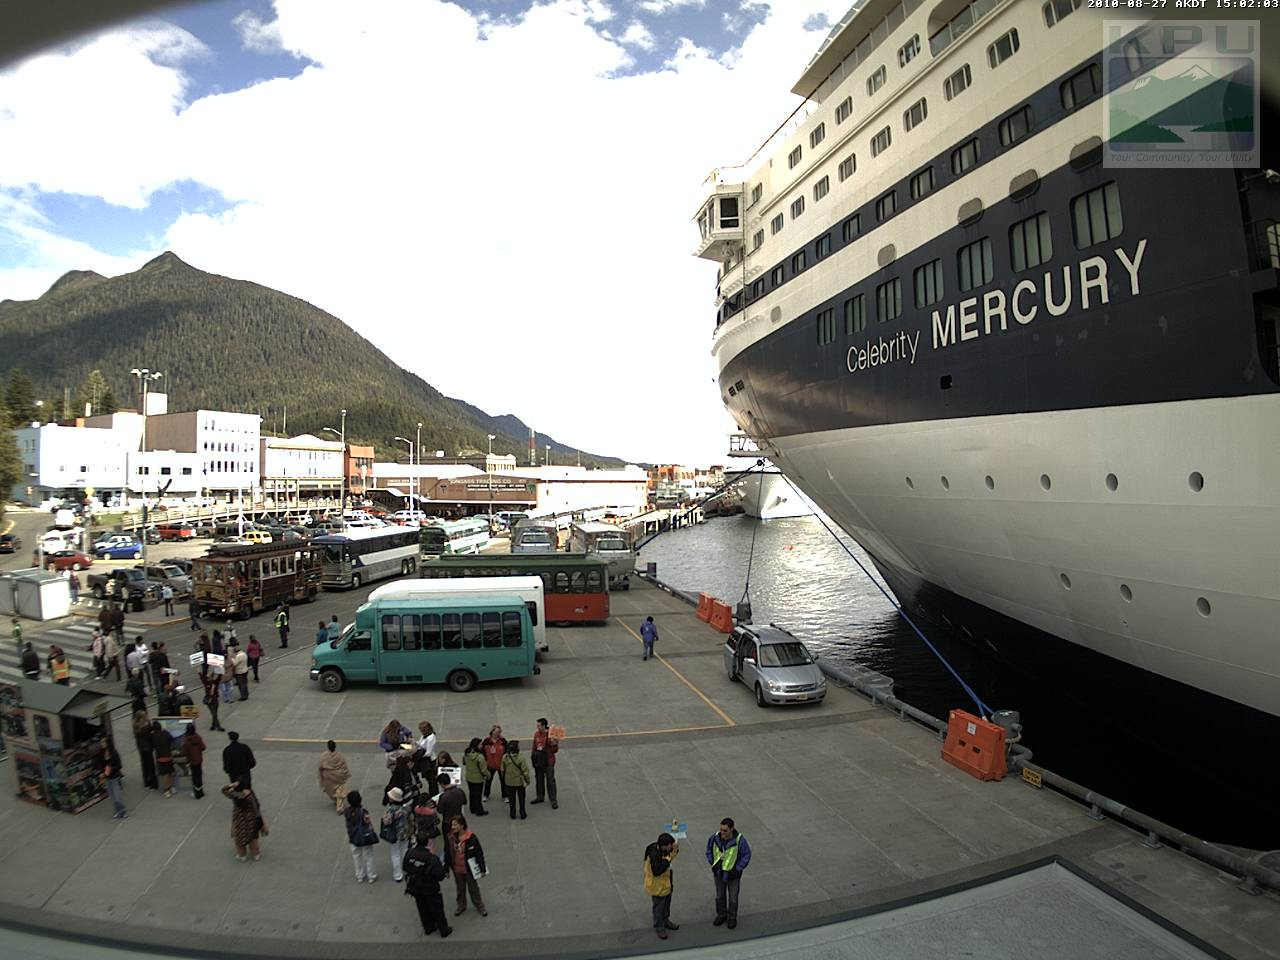 KPU Ketchikan Webcam - Webcams on cruise ships